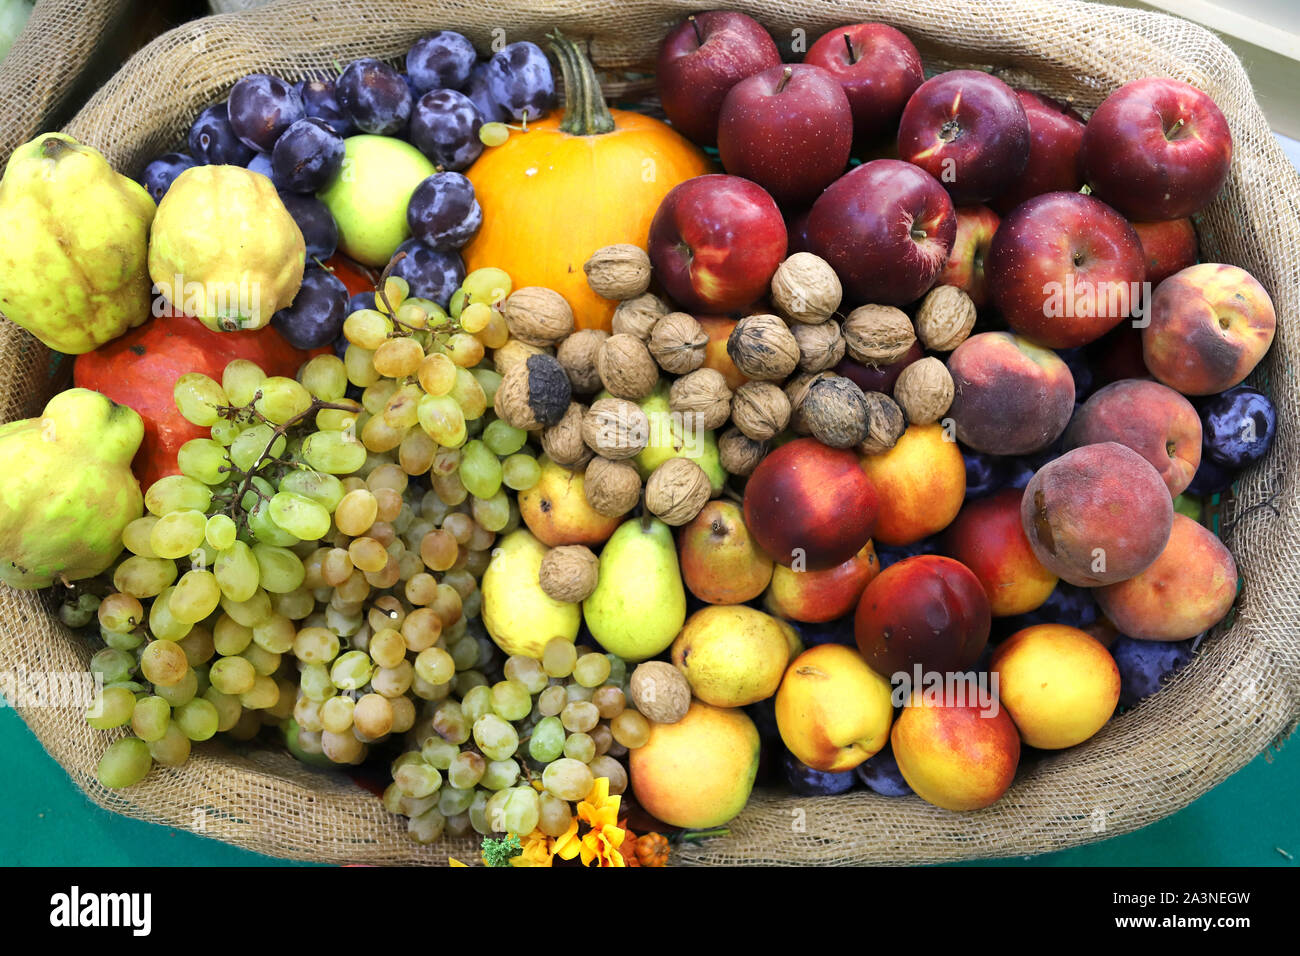 in basket as a background. Autumn fruit foods products as a background. Healthy organic harvest fruits as seasonal kitchen ingredients Stock Photo